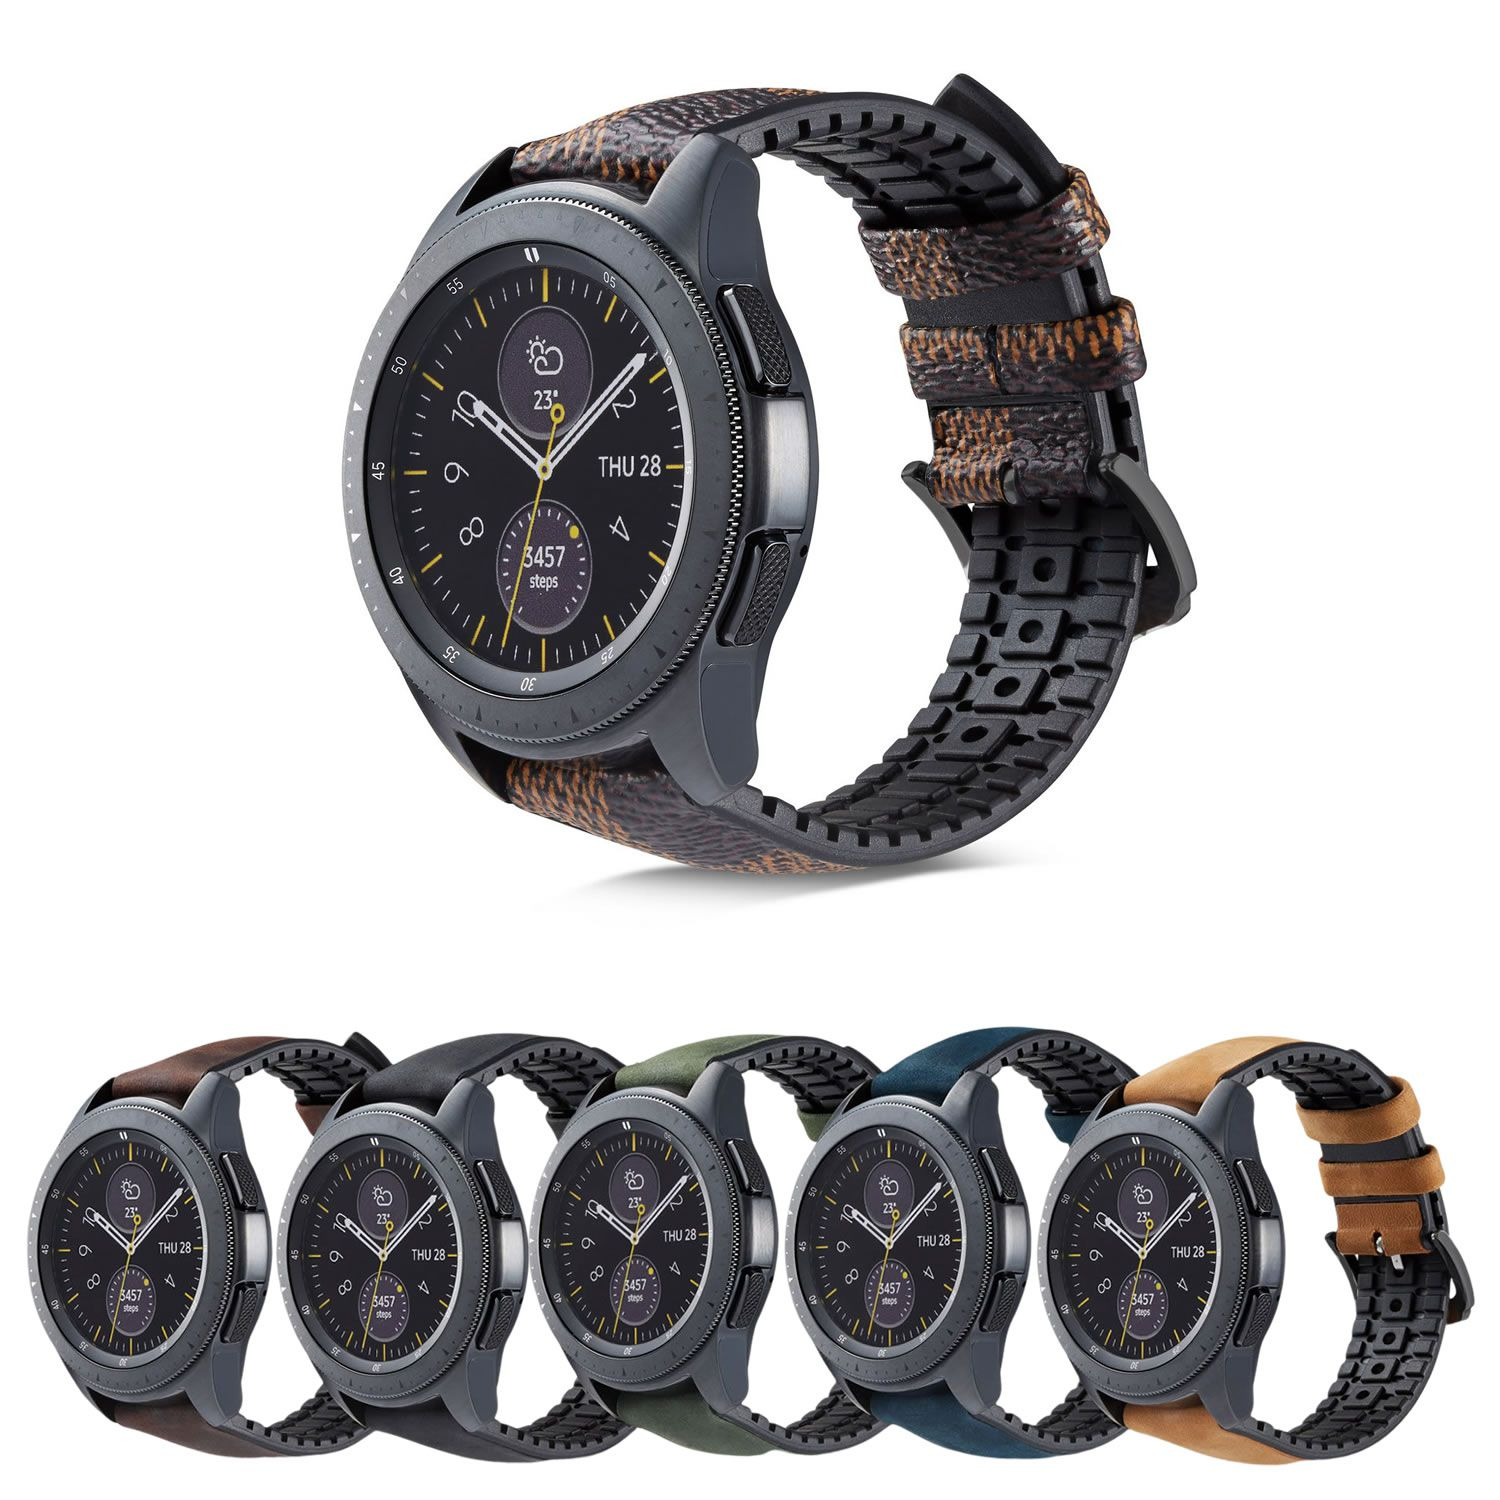 Pulseira Híbrida compatível com Samsung Galaxy Watch Active - Galaxy Watch 3 41mm - Galaxy Watch 42mm - Amazfit GTR 42mm